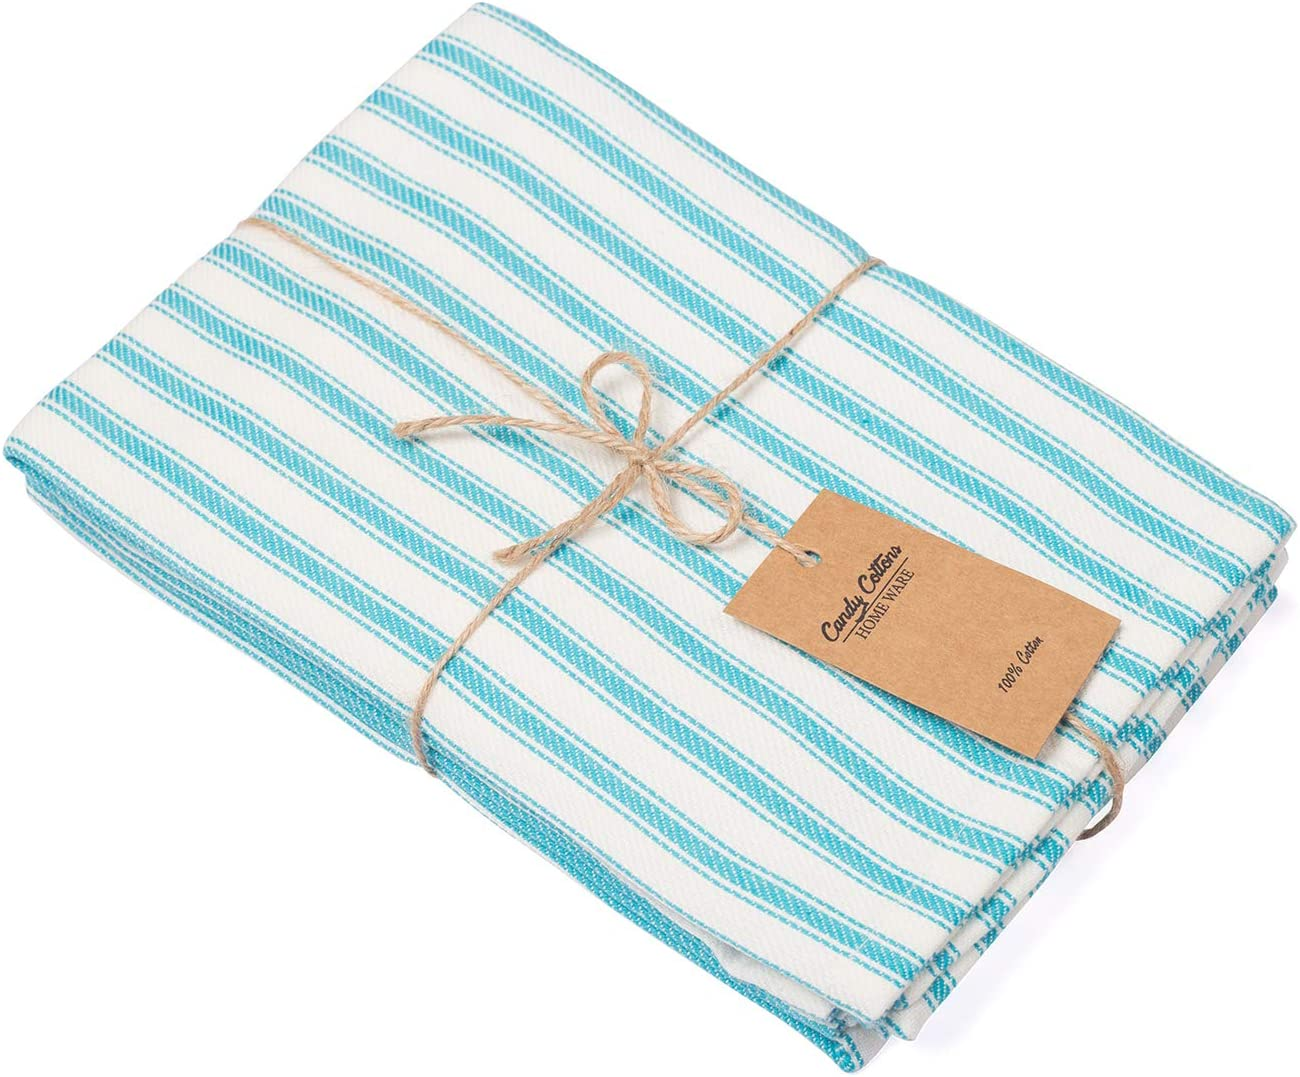 Pack of 6 18 x 18 Table Napkin French Stripes Dinner Napkin 100/% Pure Cotton Aqua Blue and White Stripes